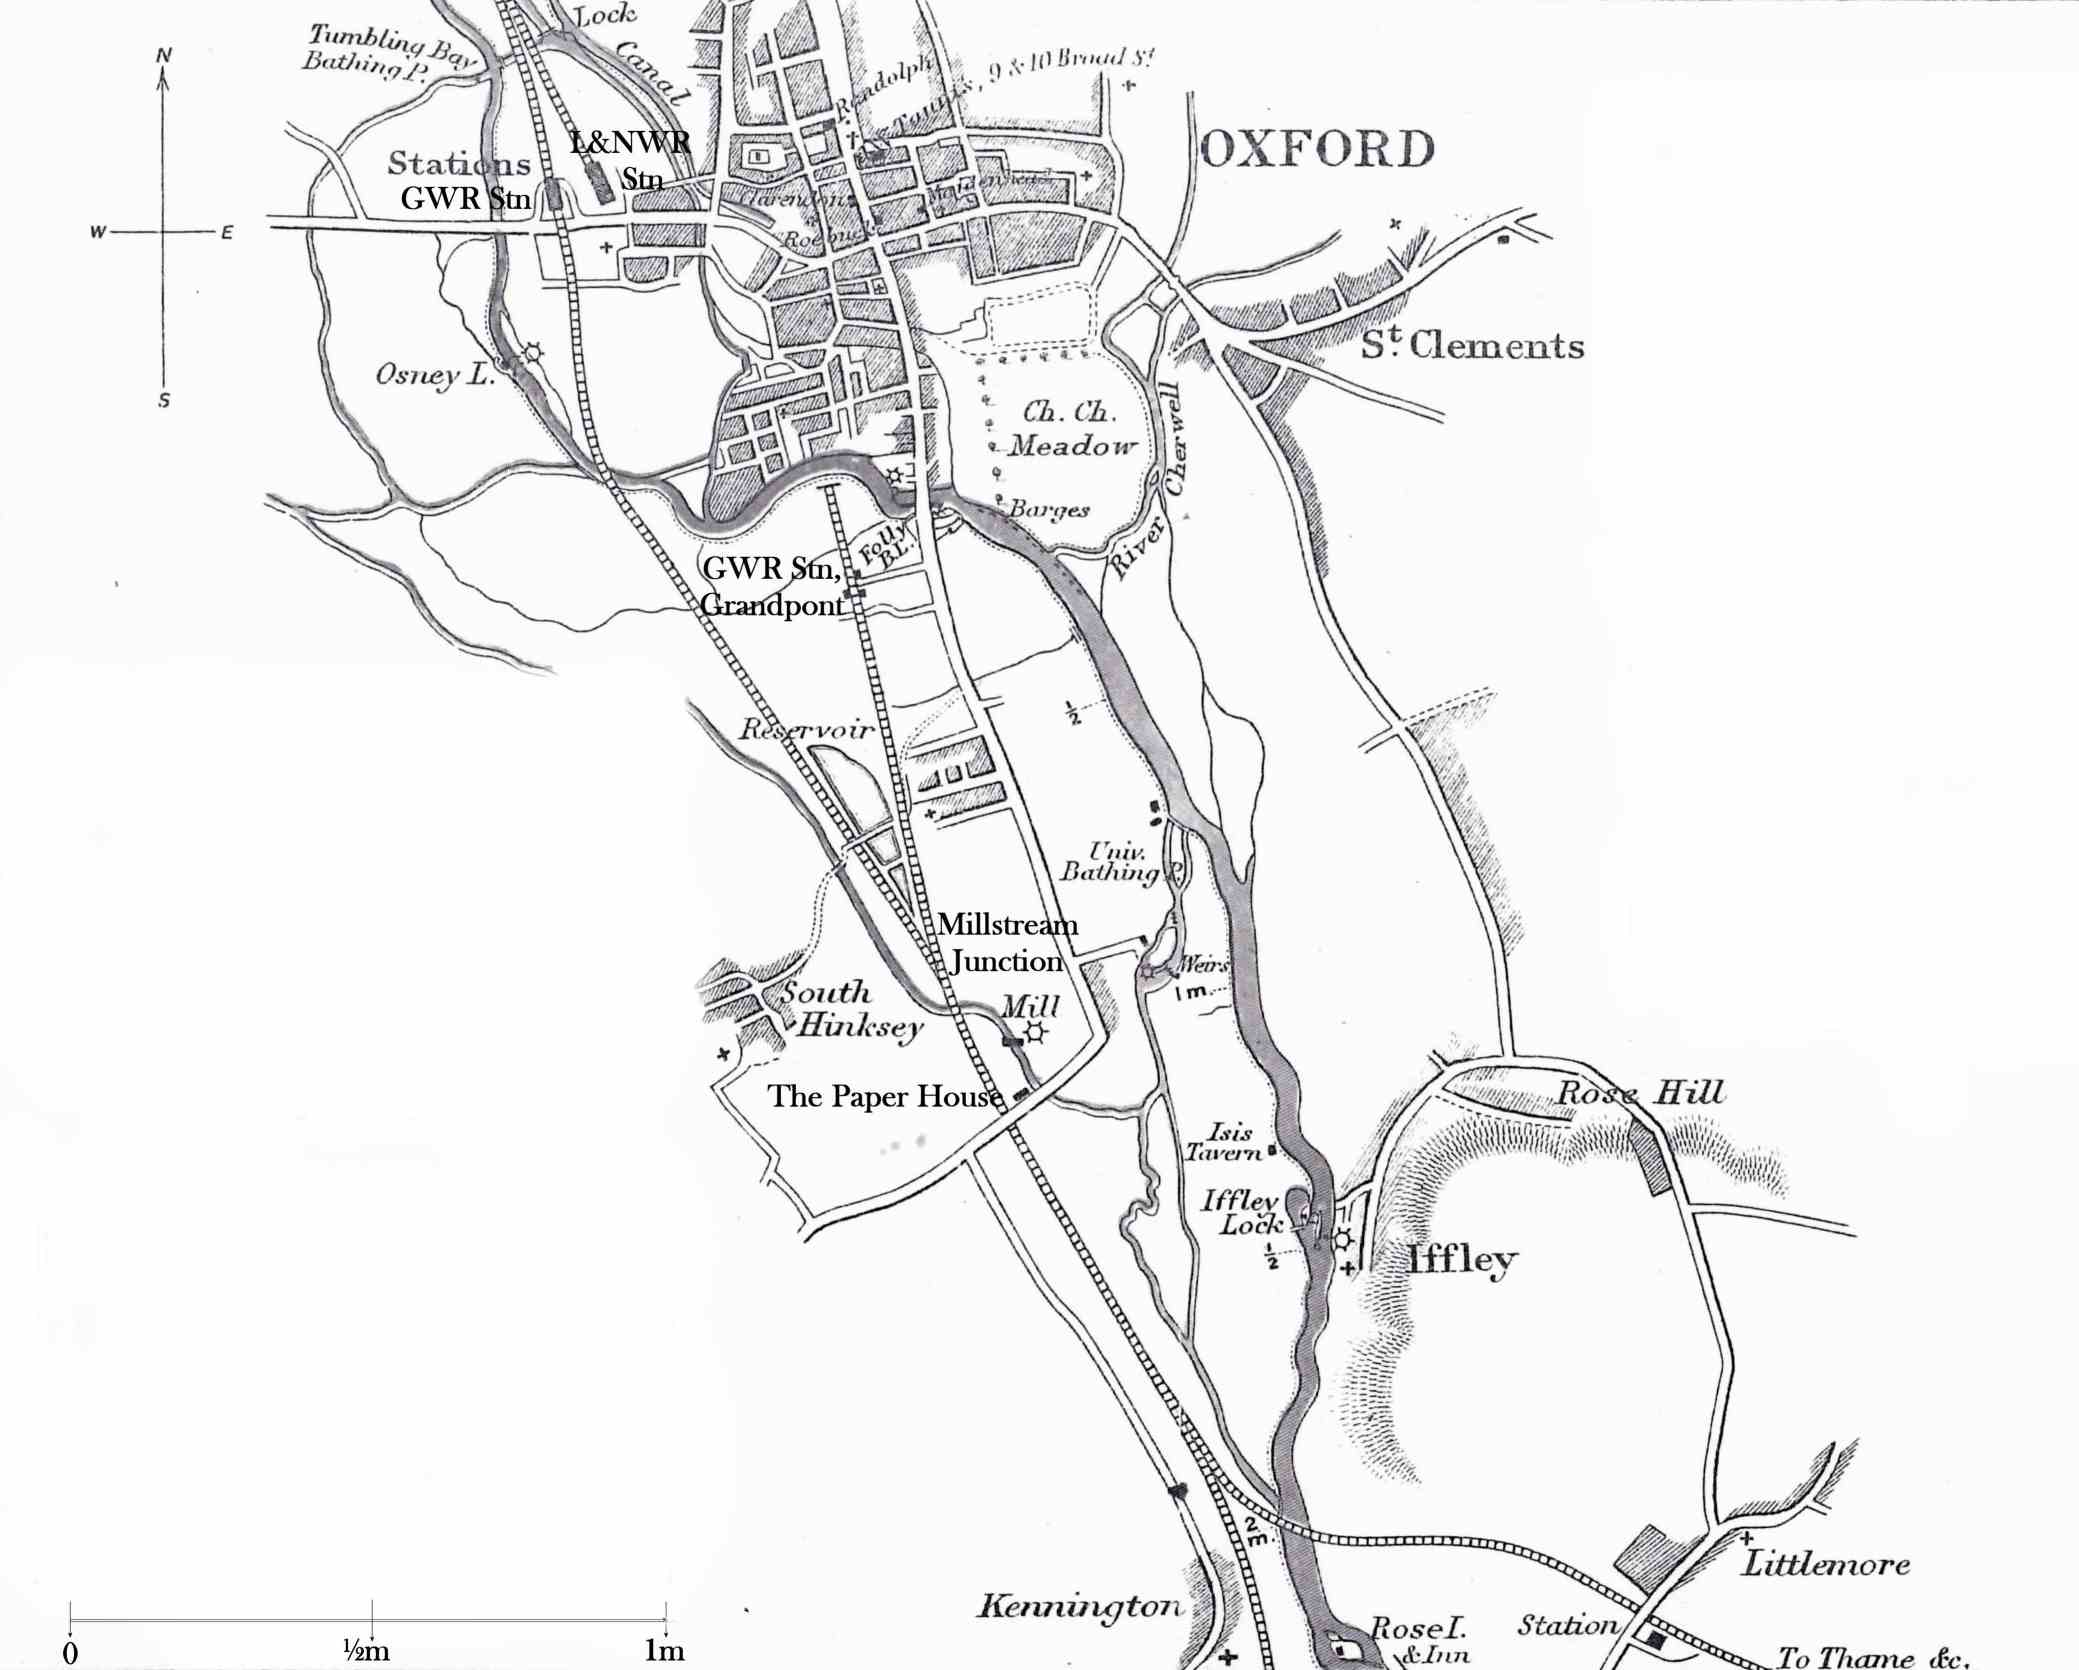 Taunt's Map of Oxford Railways, 1879